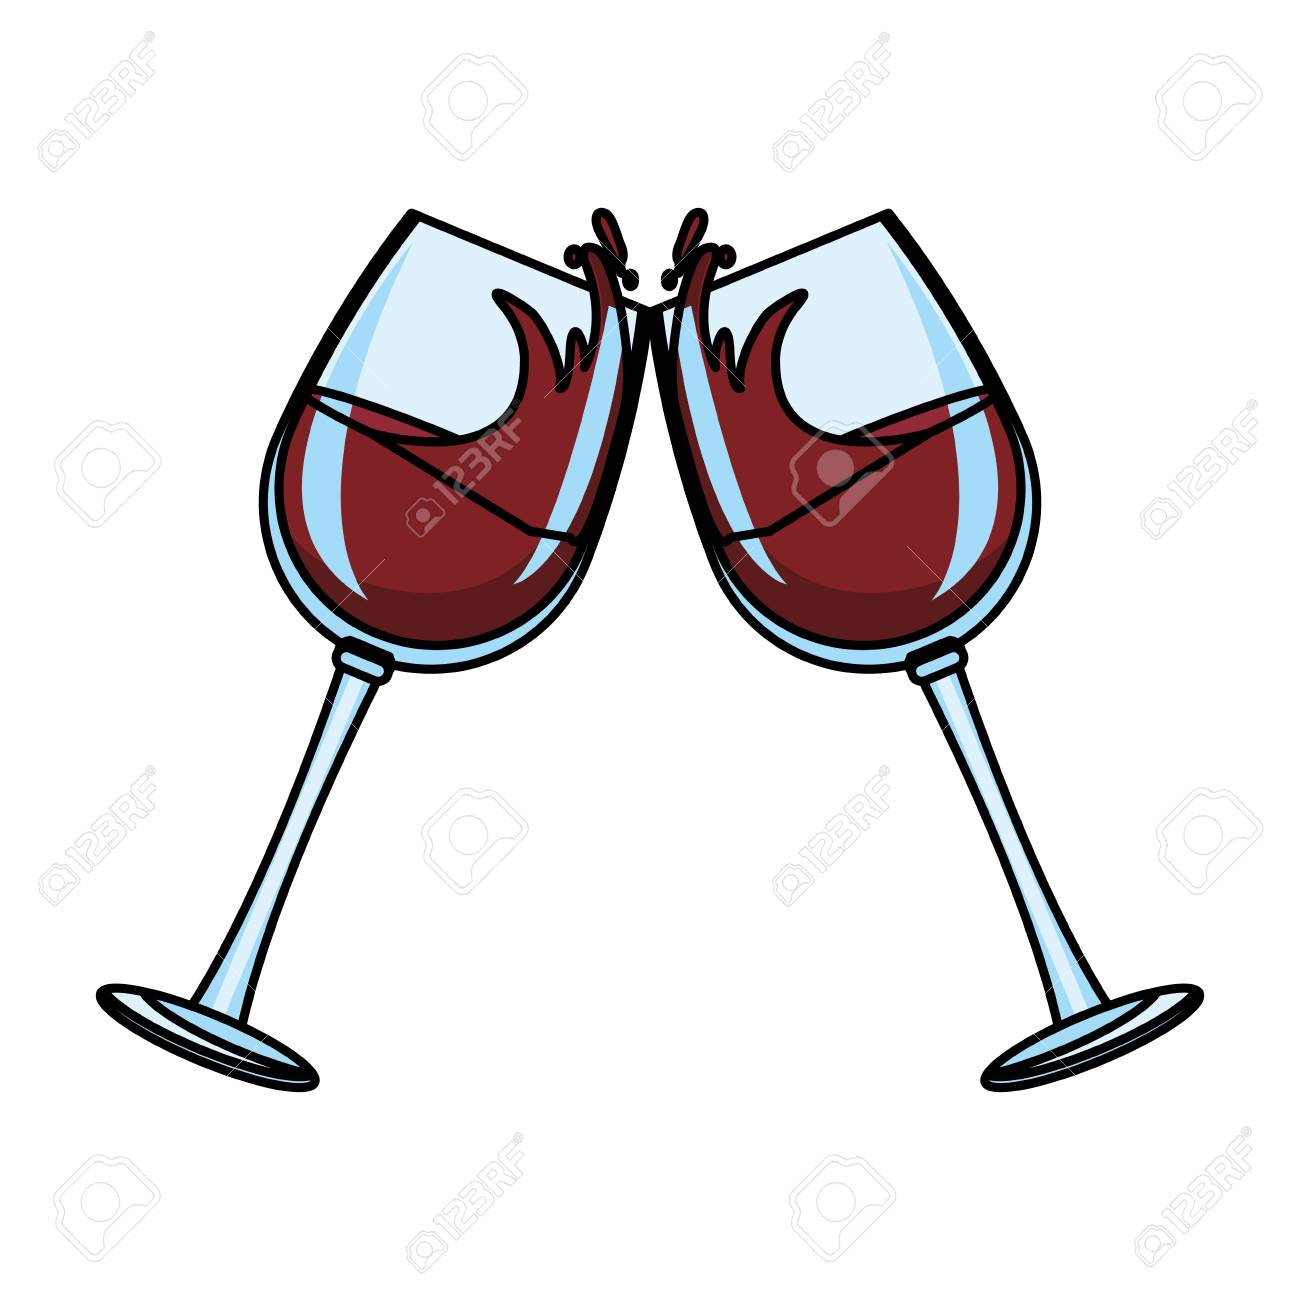 Wine glass toast vector illustration graphic design.